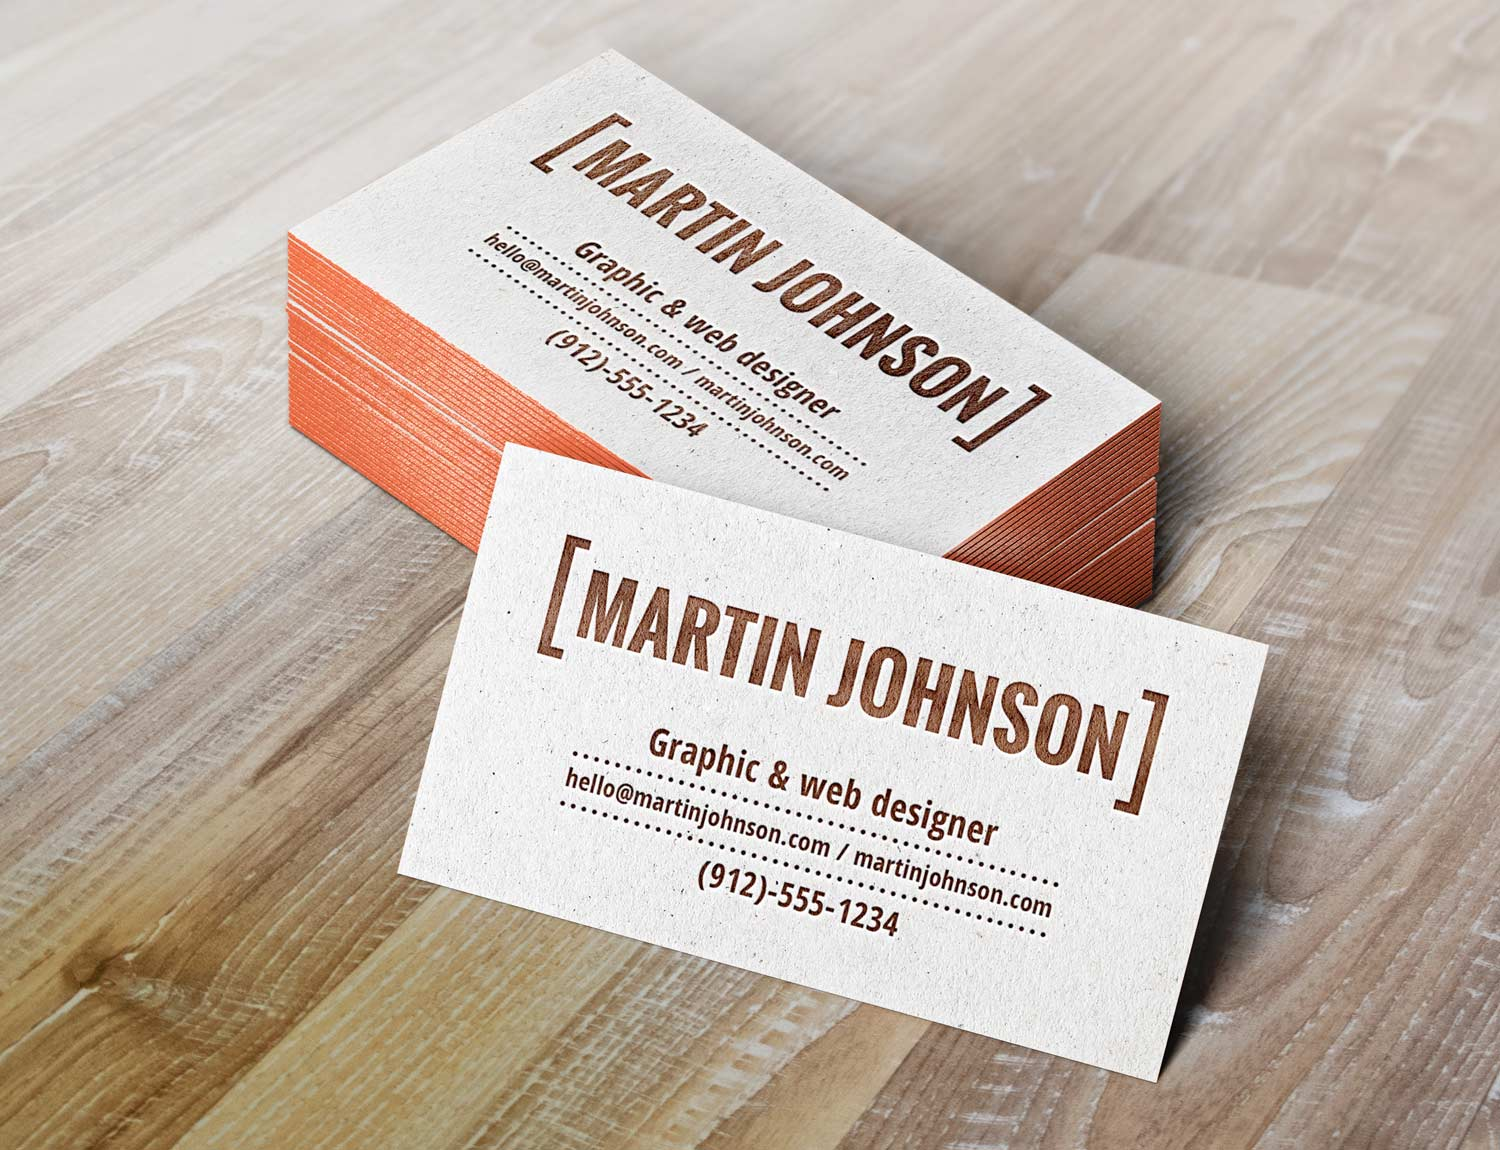 masonry business cards - Targer.golden-dragon.co